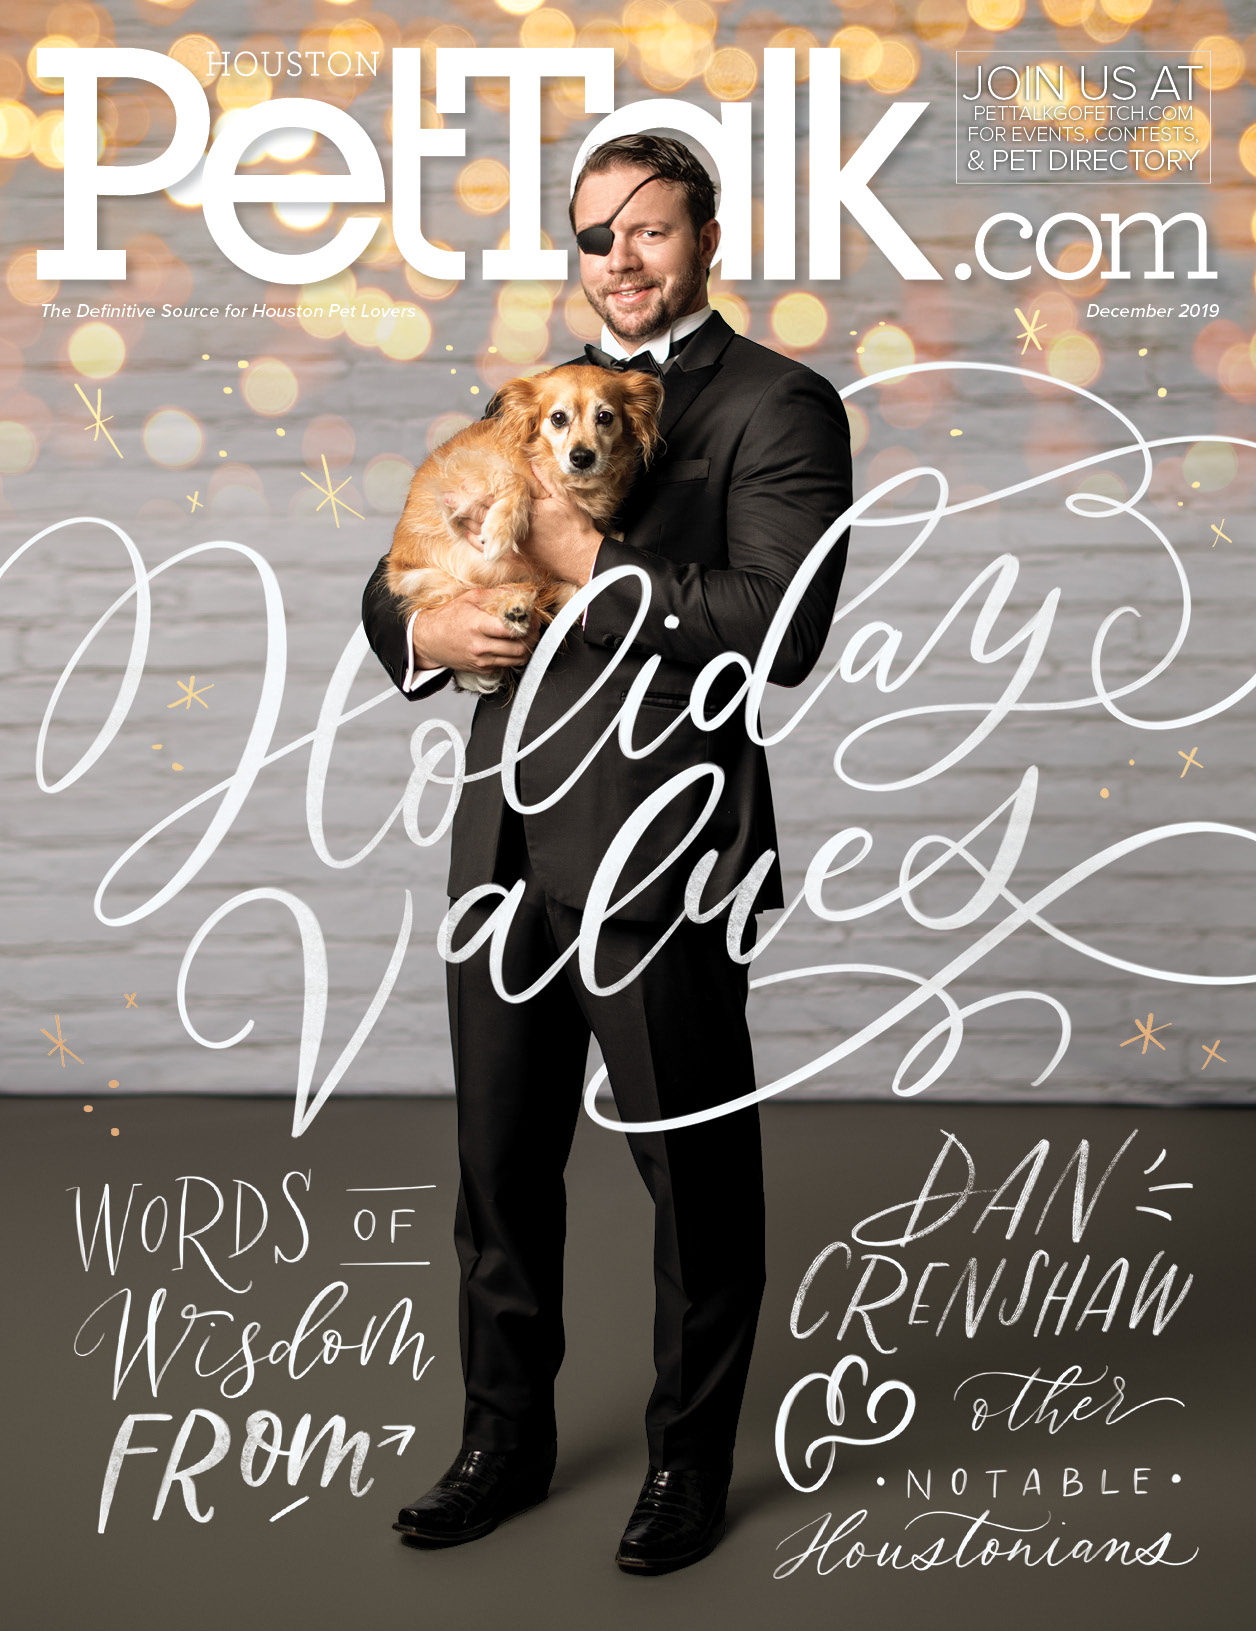 December 2019 Digital Issue of Houston PetTalk